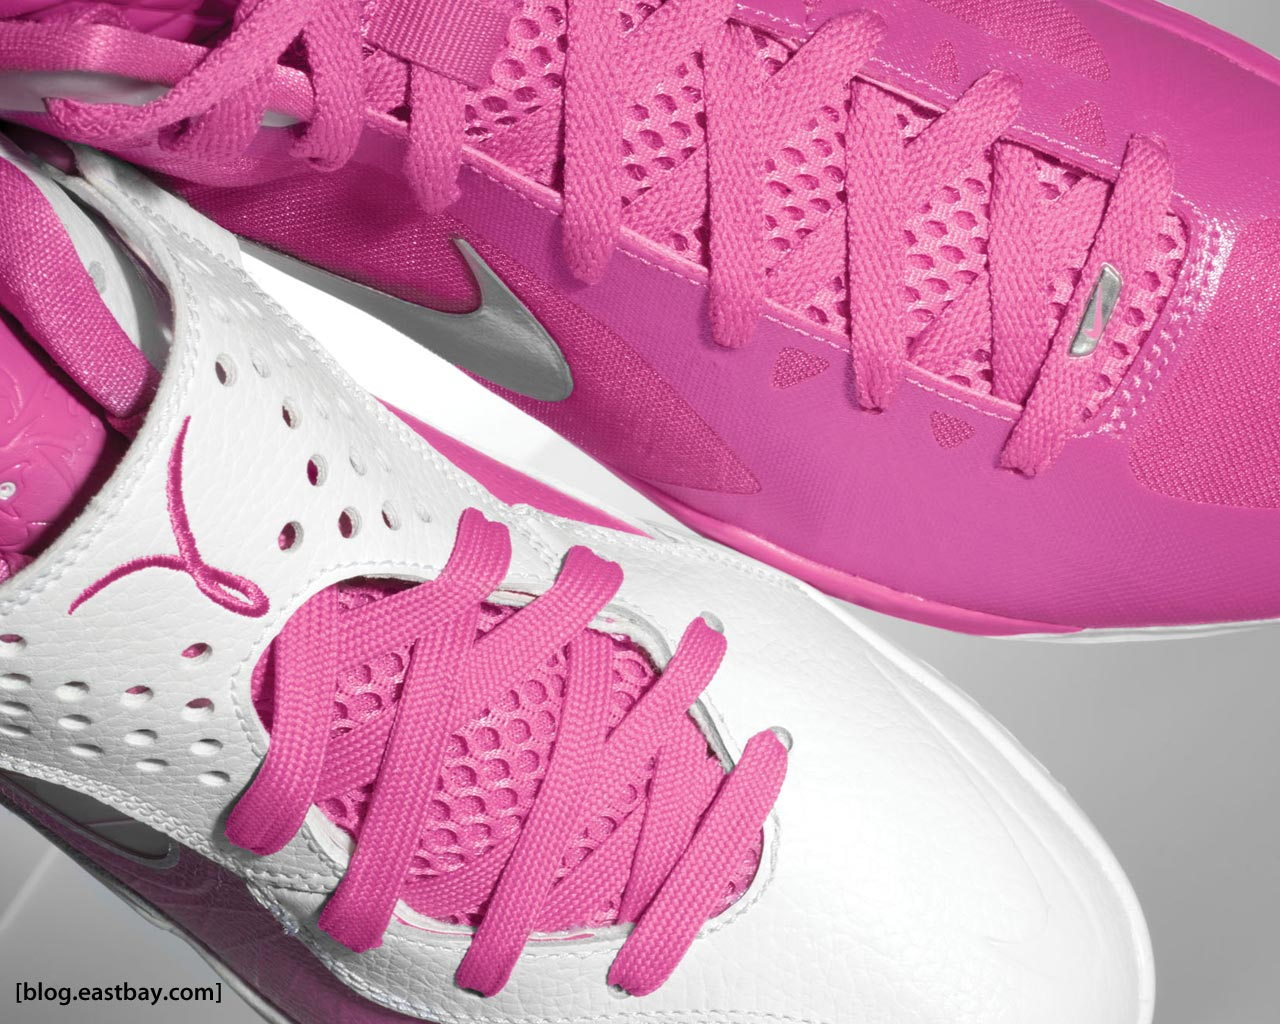 separation shoes 13eeb 94896 Kay Yow Nike Hyperdunk 2011 and Nike Zoom Soldier V